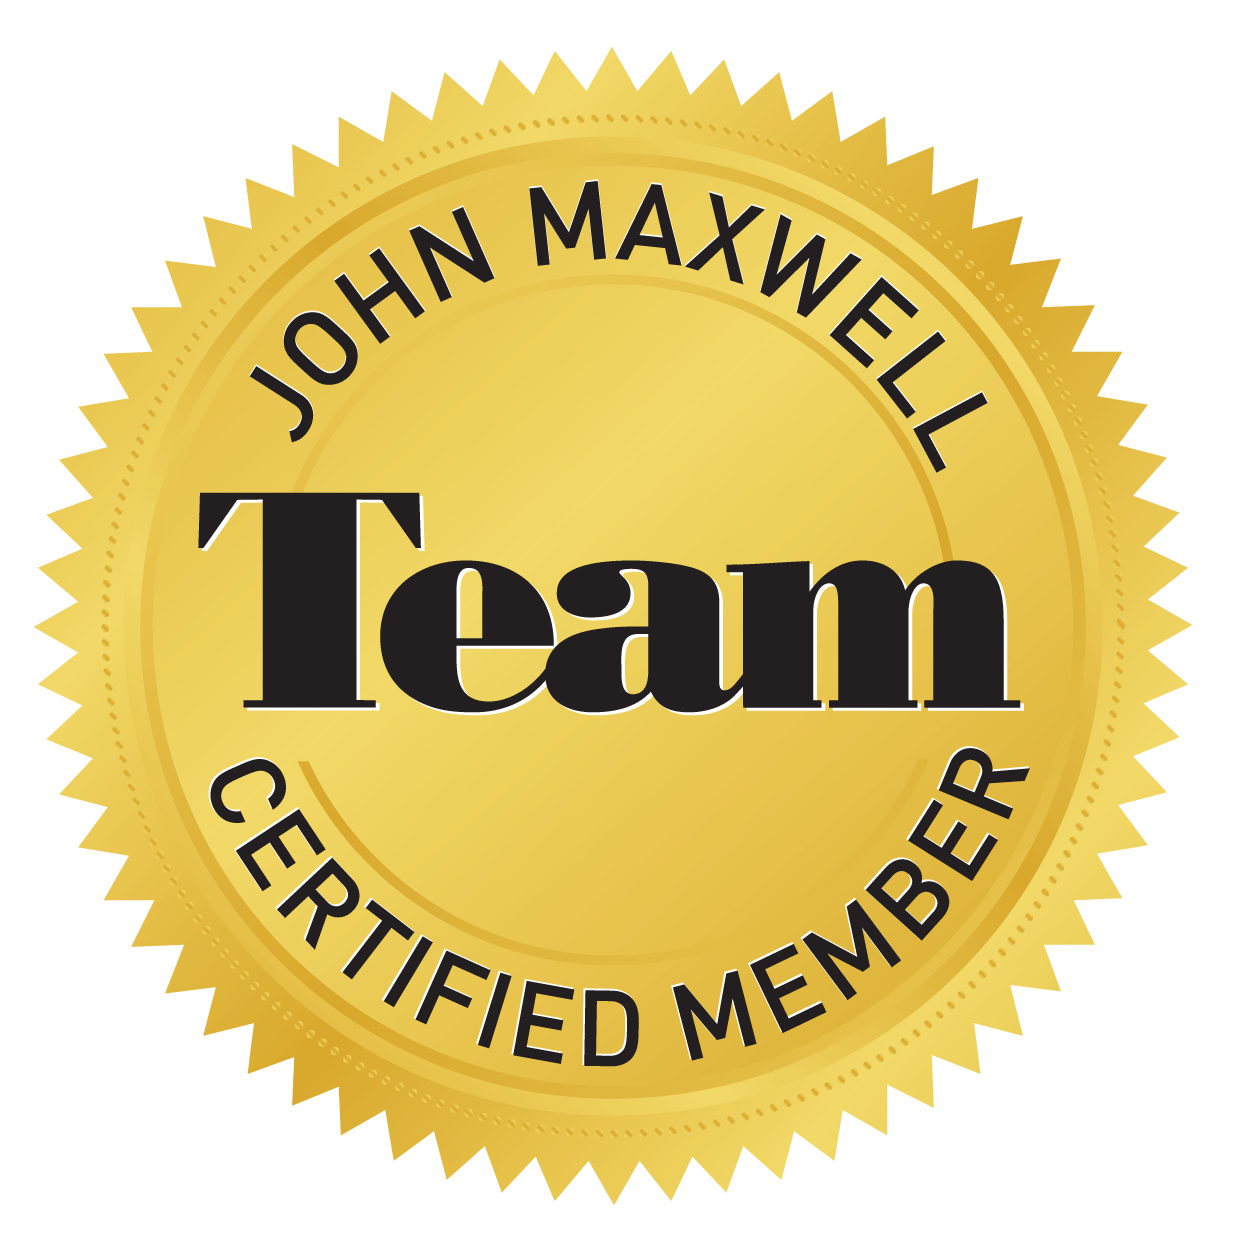 Kevin Wayne Johnson is a John Maxwell Team Certified Speaker